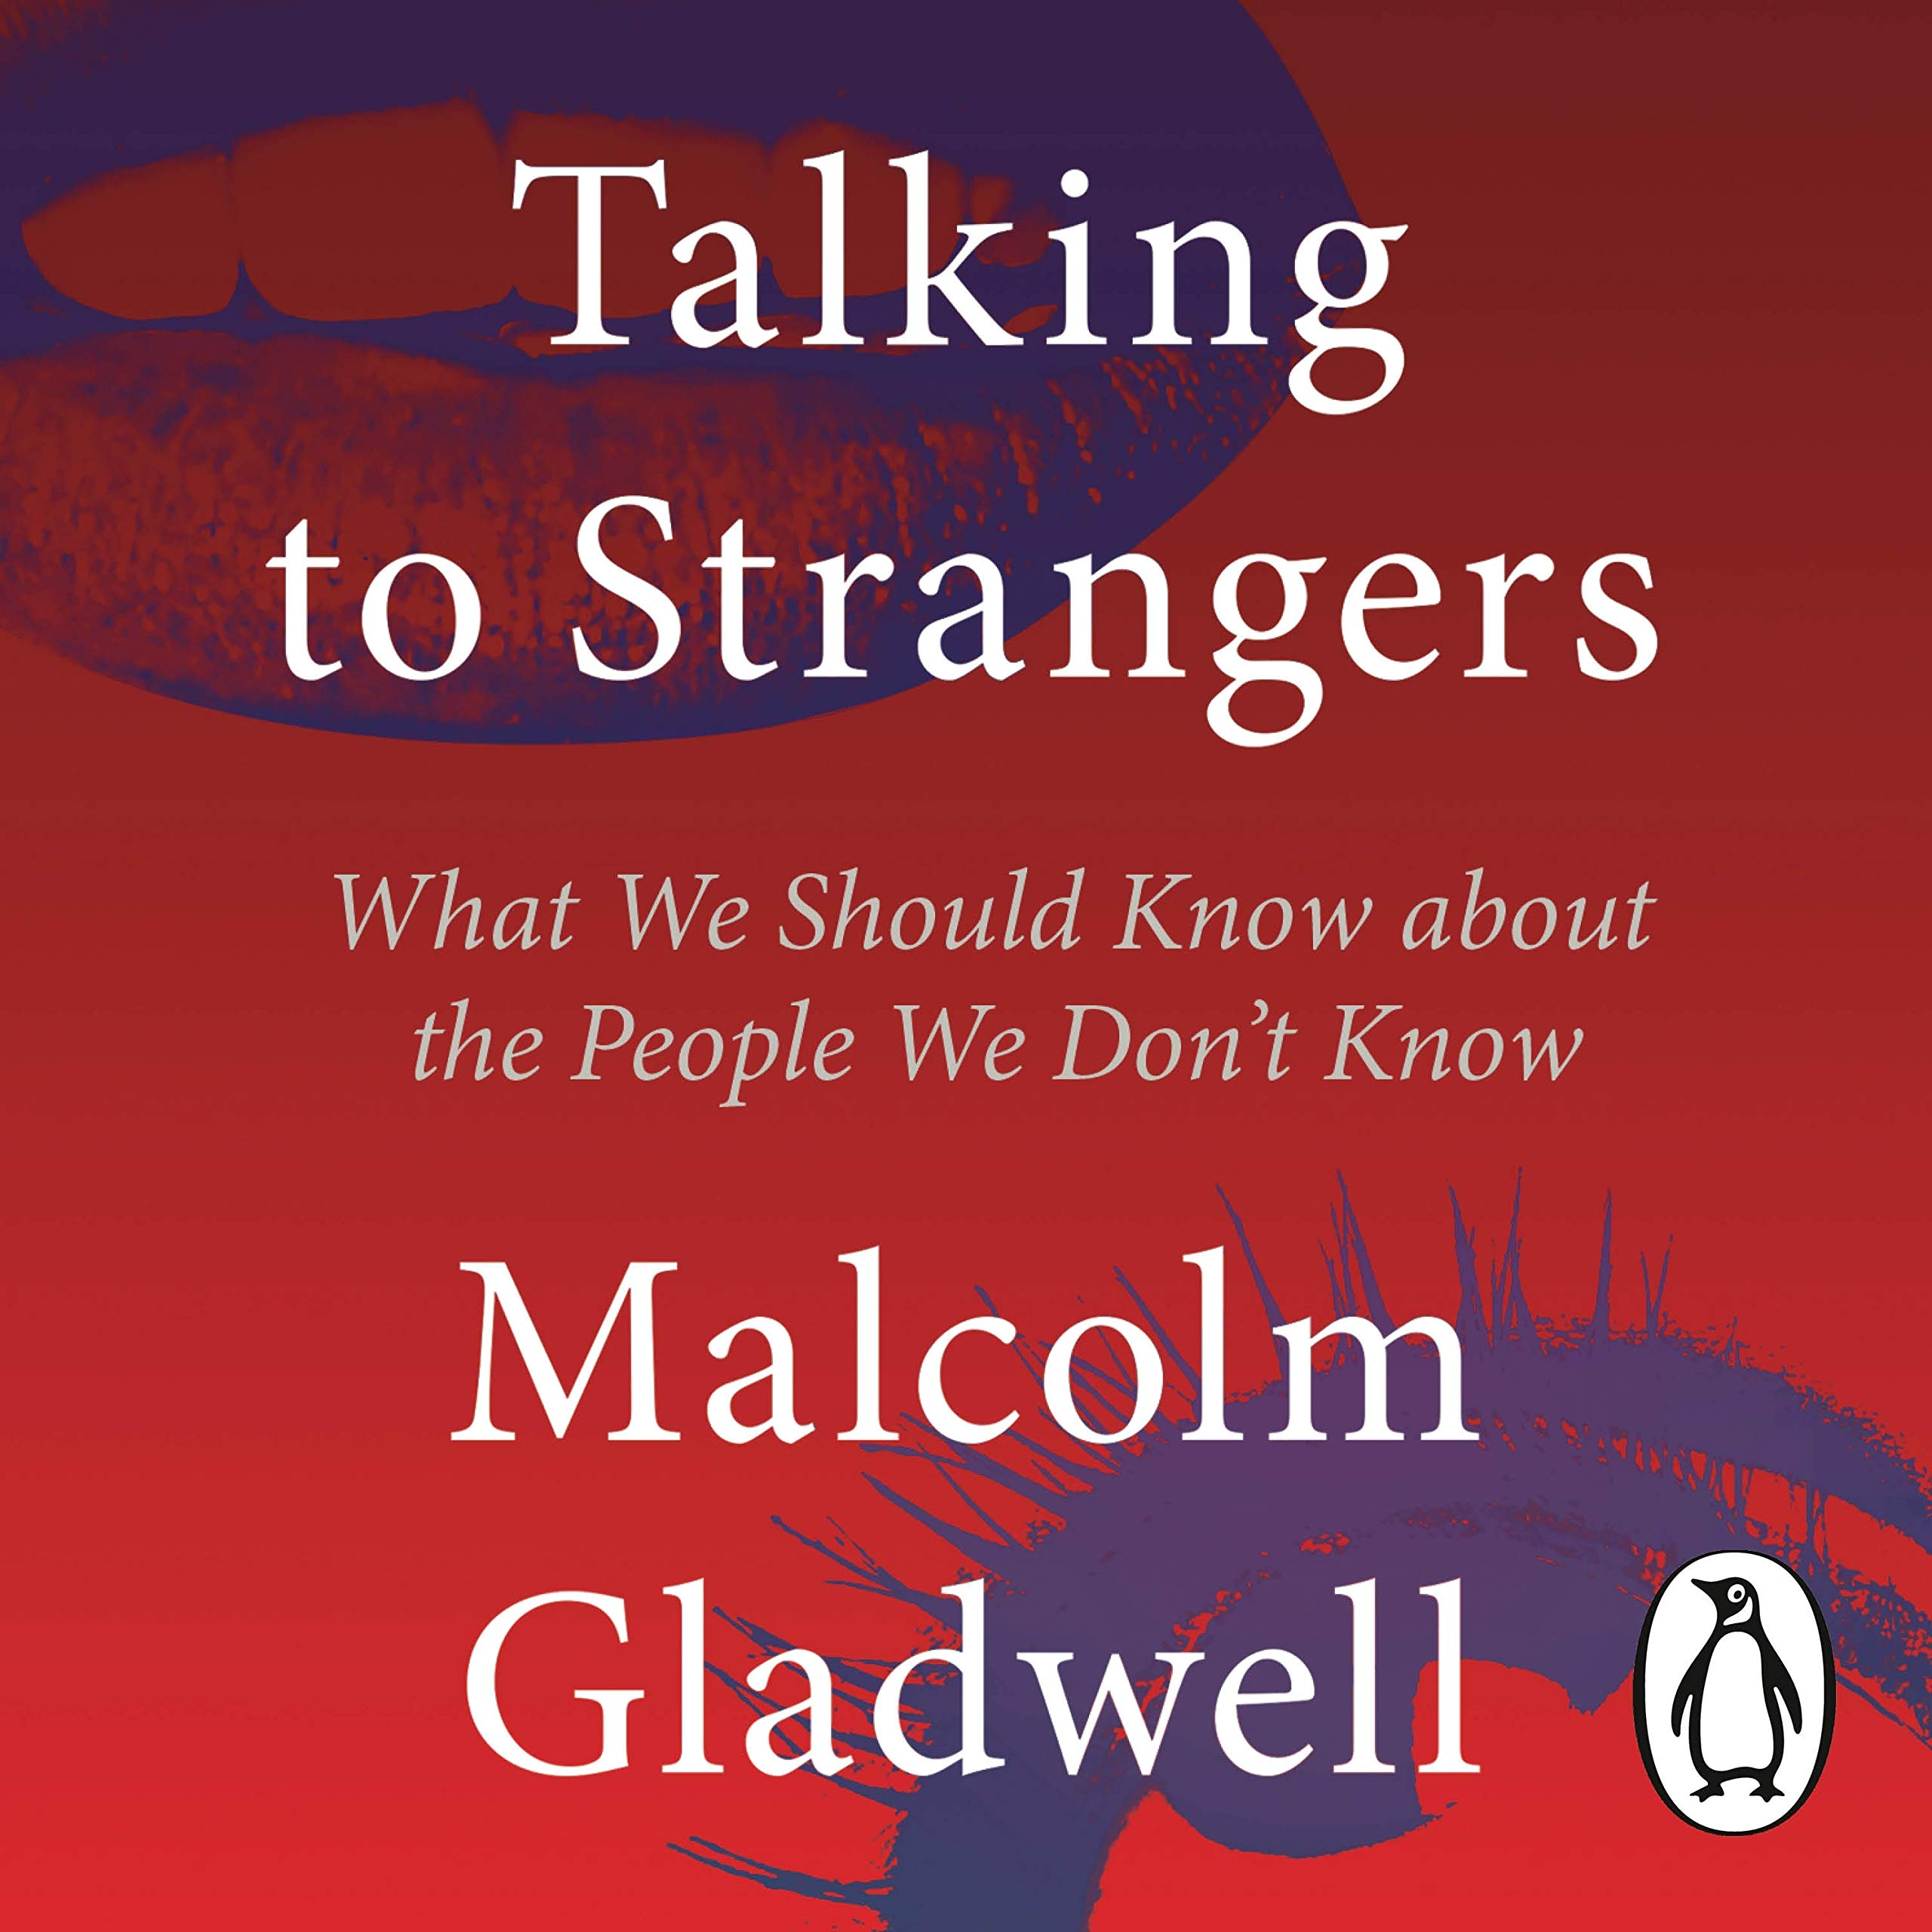 Talking to Strangers: What We Should Know about the People We Dont Know: Amazon.es: Gladwell, Malcolm, Gladwell, Malcolm: Libros en idiomas extranjeros